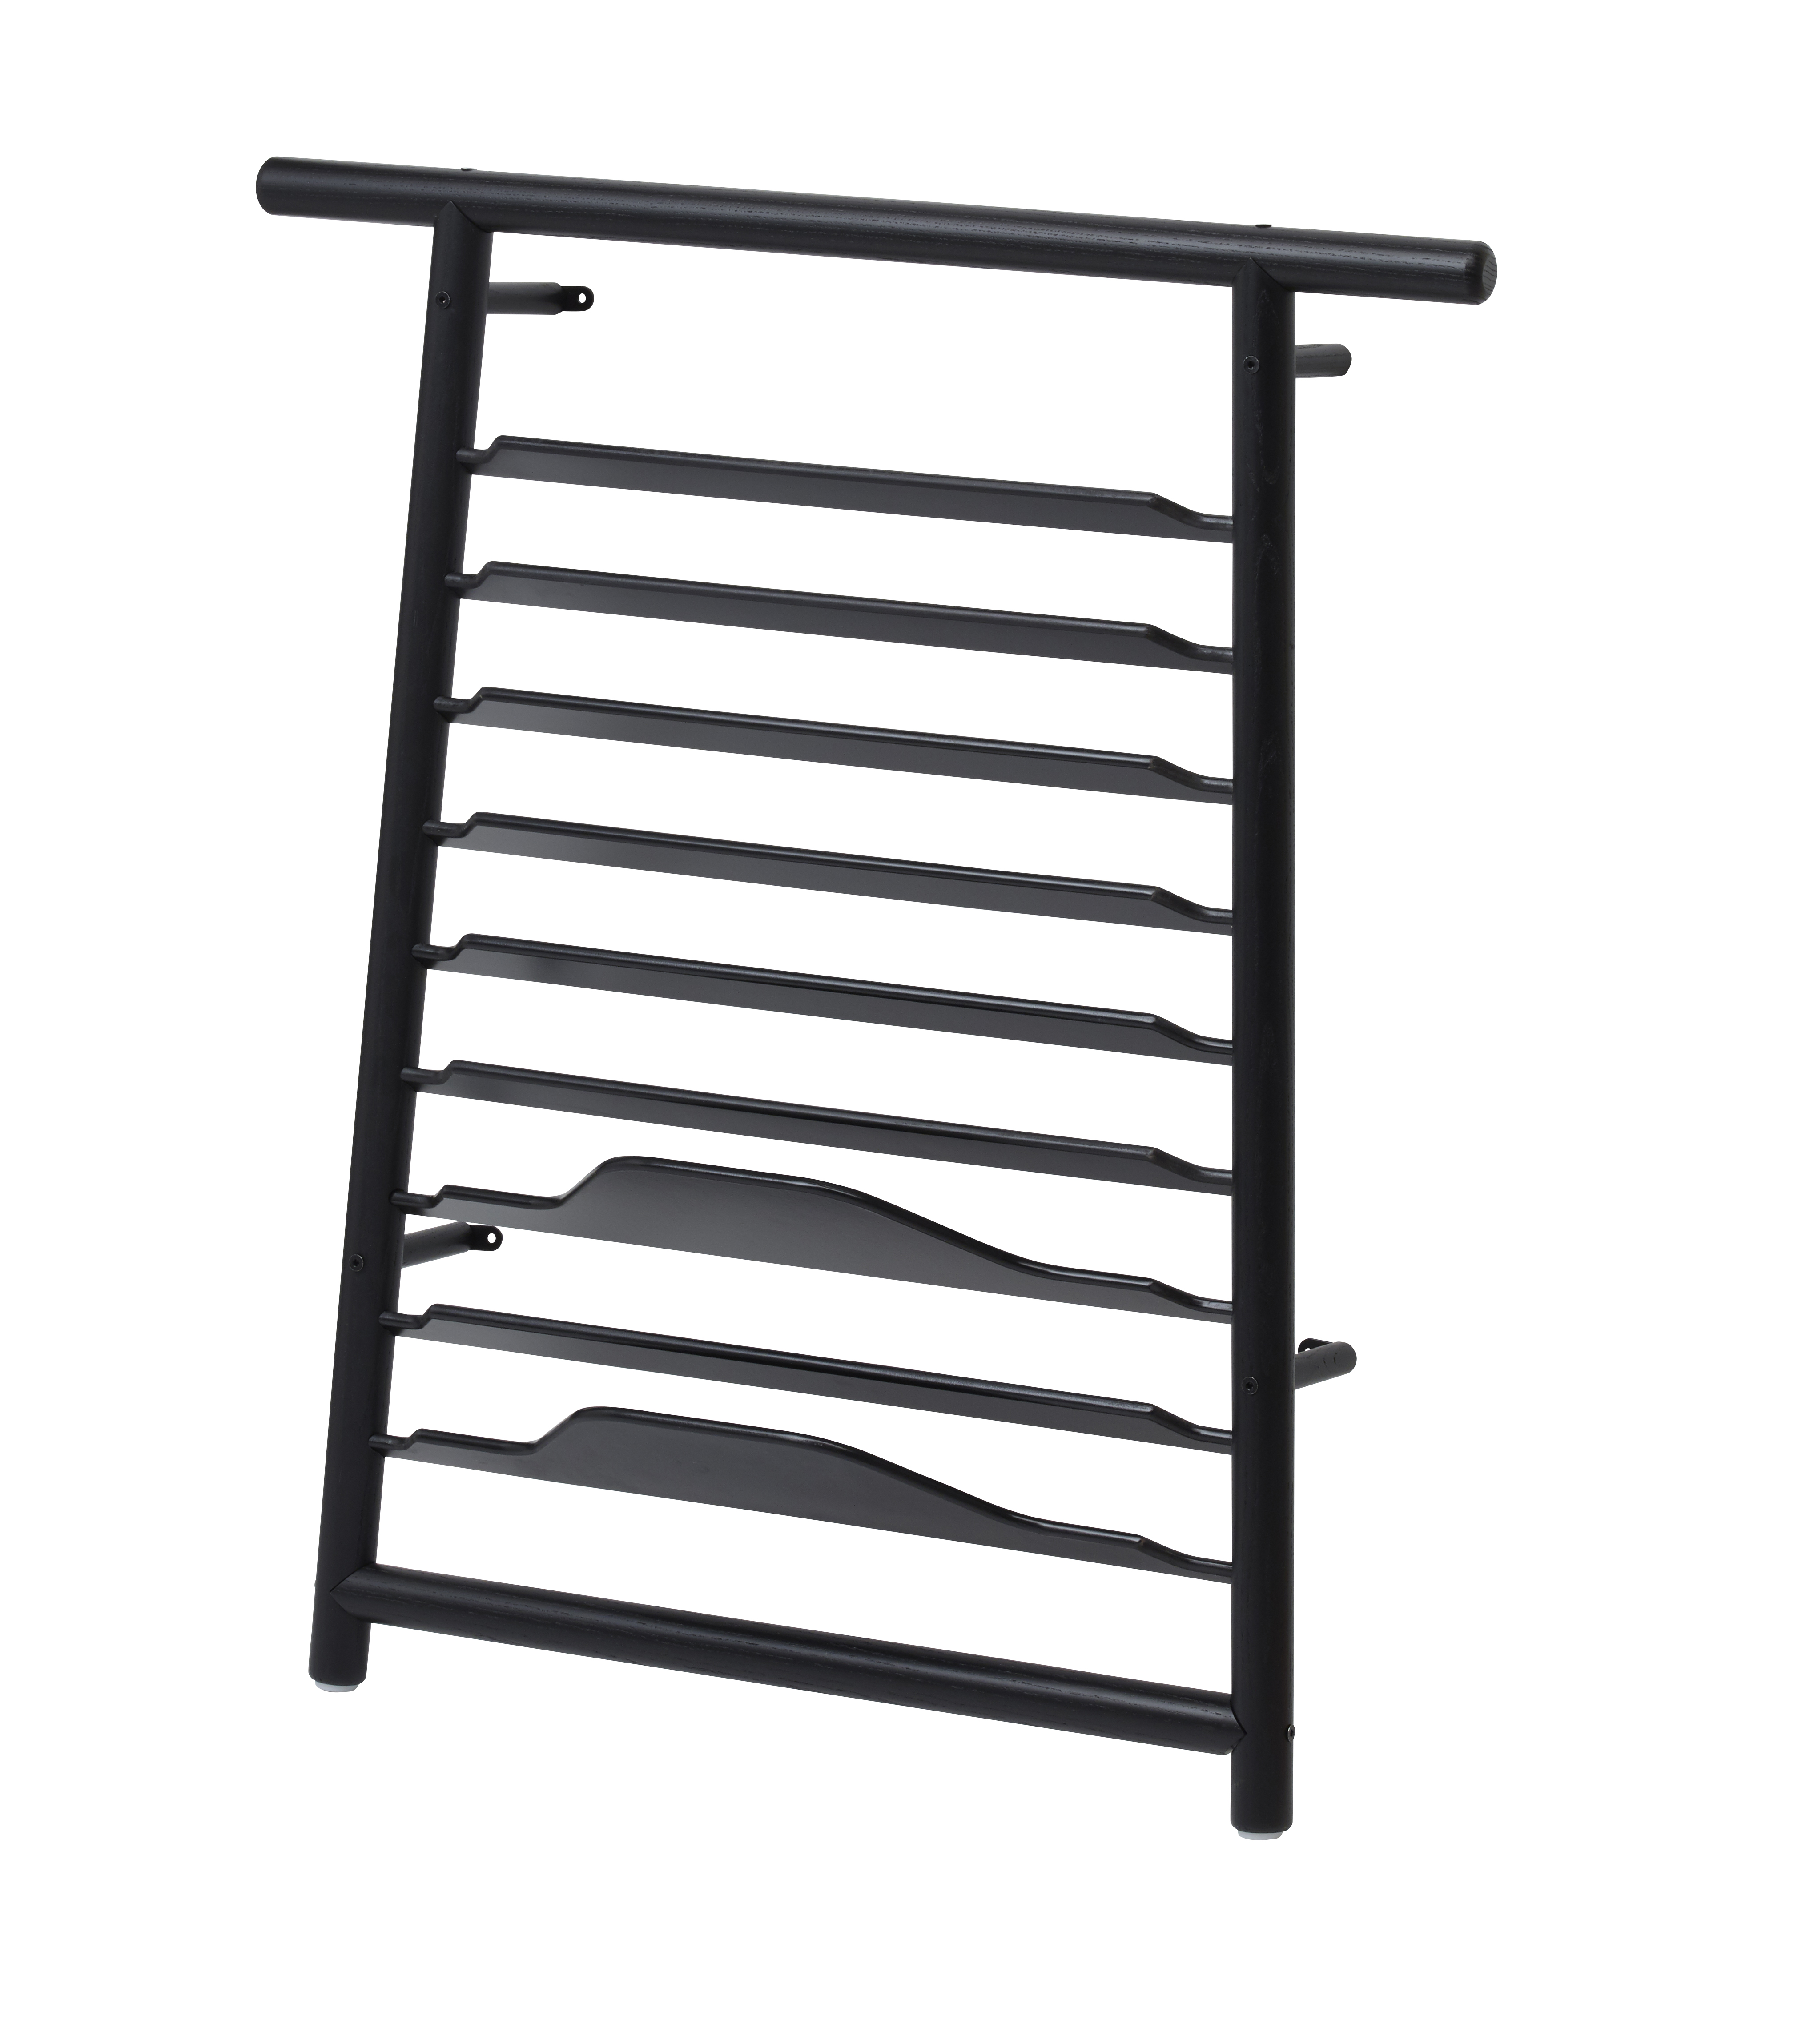 4ba04209bb5f IKEA SPANST Collection - Chris Stamp May 2018